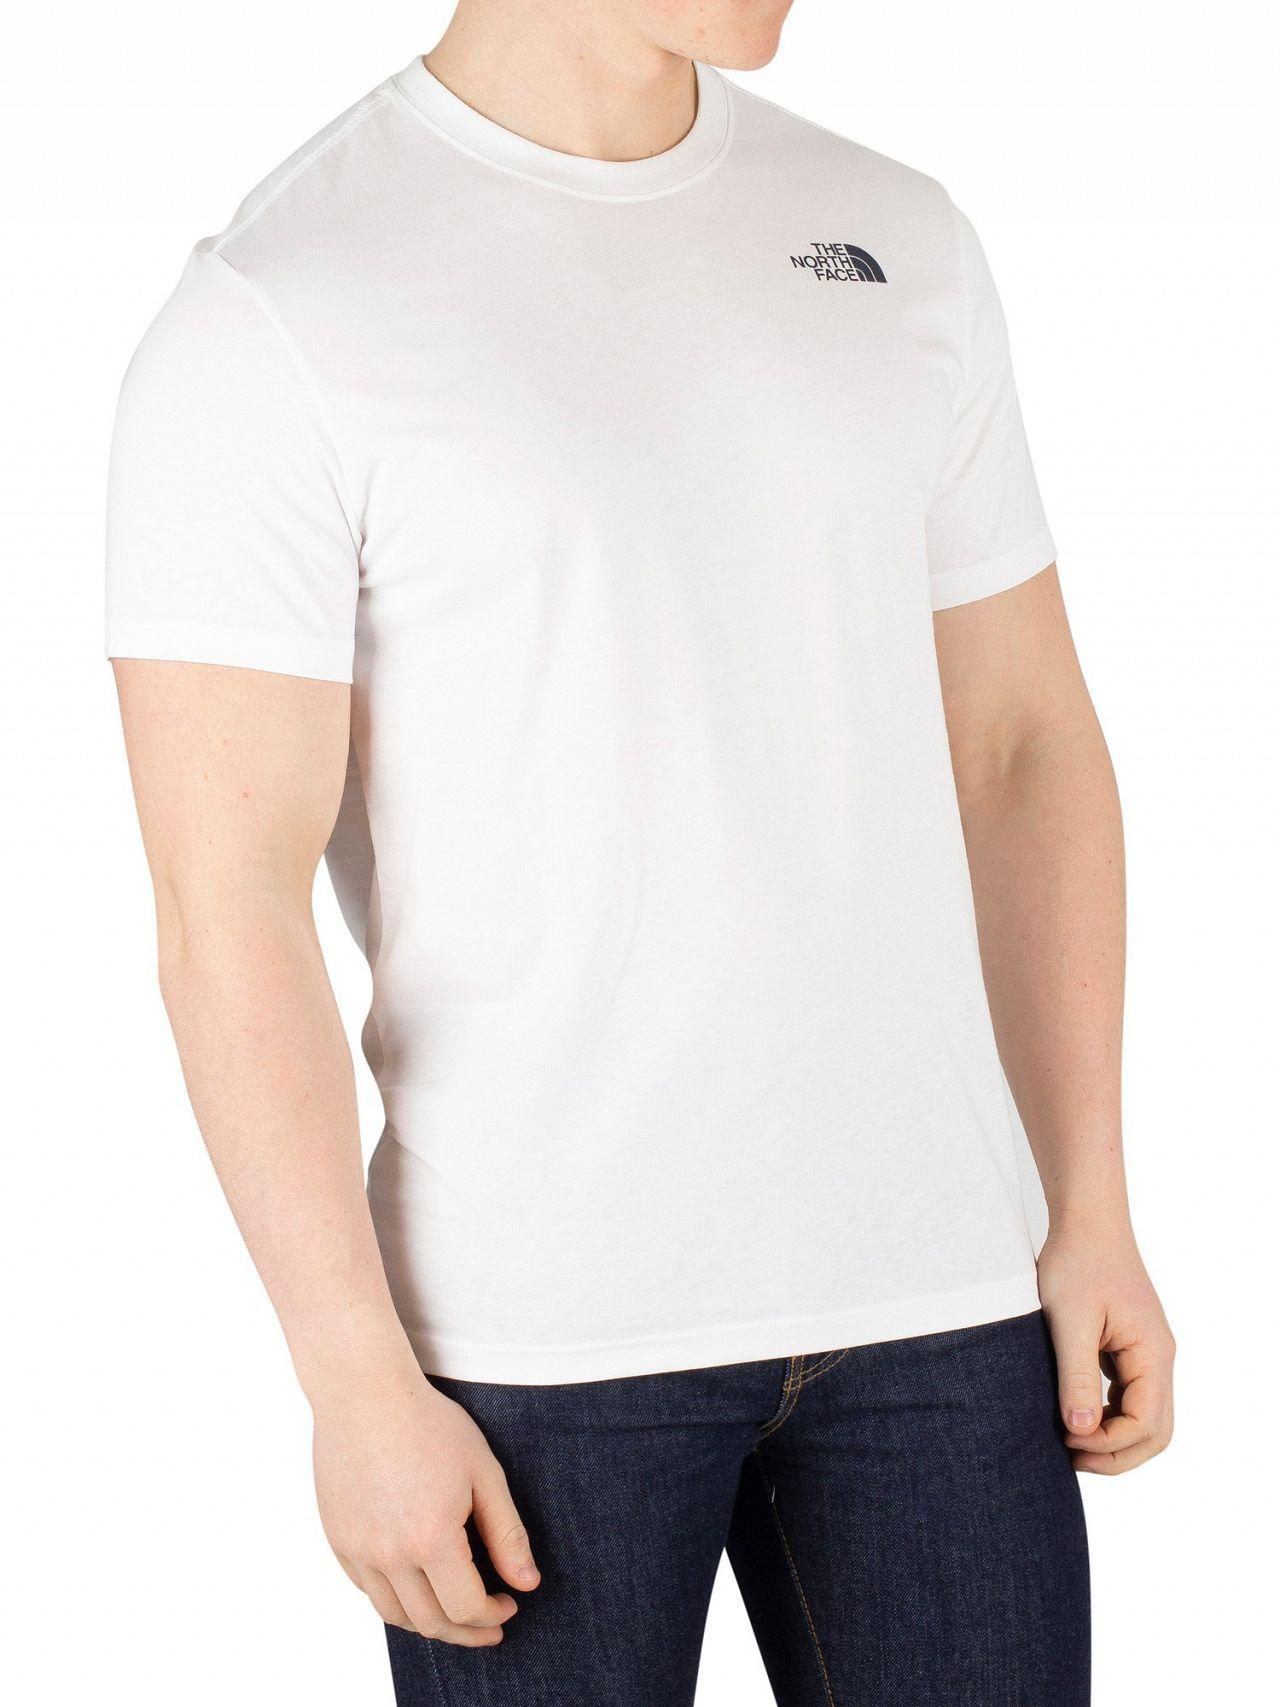 efd37df769 Lyst - The North Face White urban Navy Redbox T-shirt in White for Men